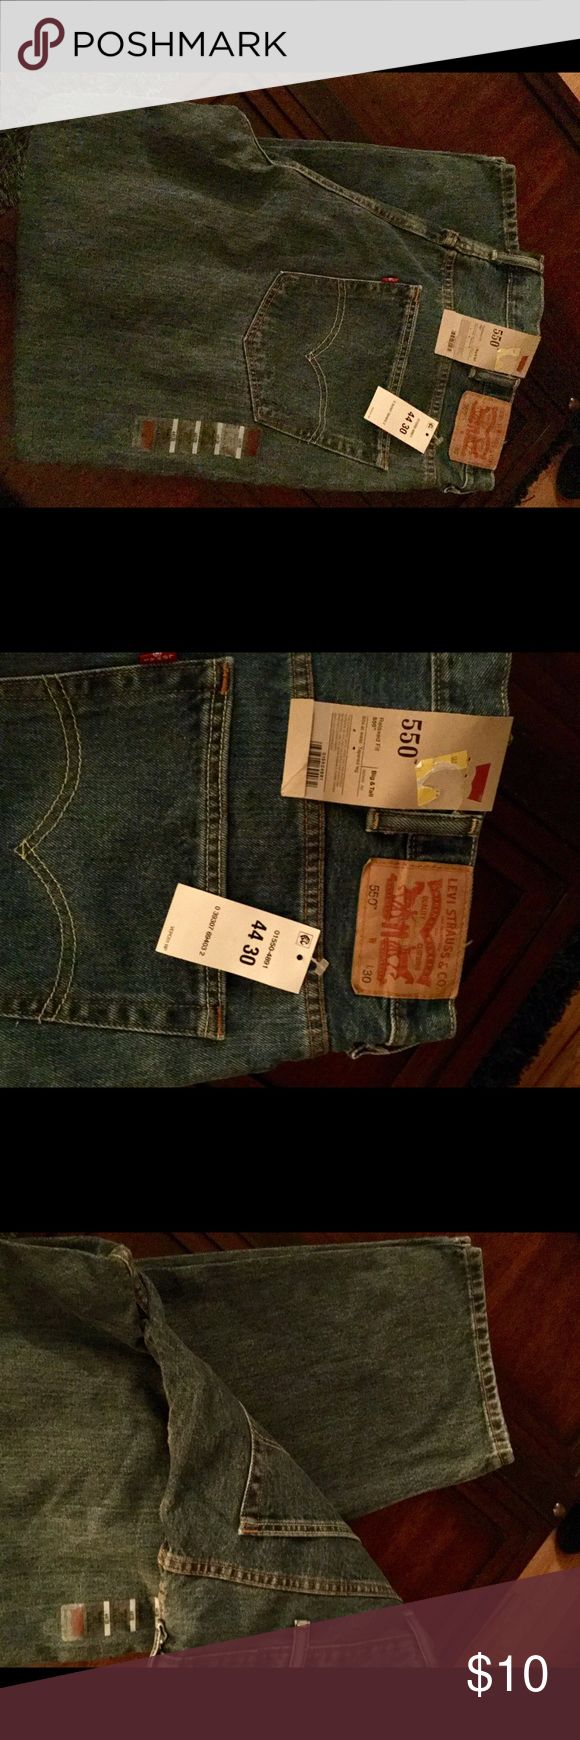 Levi's 550. Big and Tall jeans Regular denim color, picture 4 is the color. Size 44x30. Levi's Jeans Relaxed